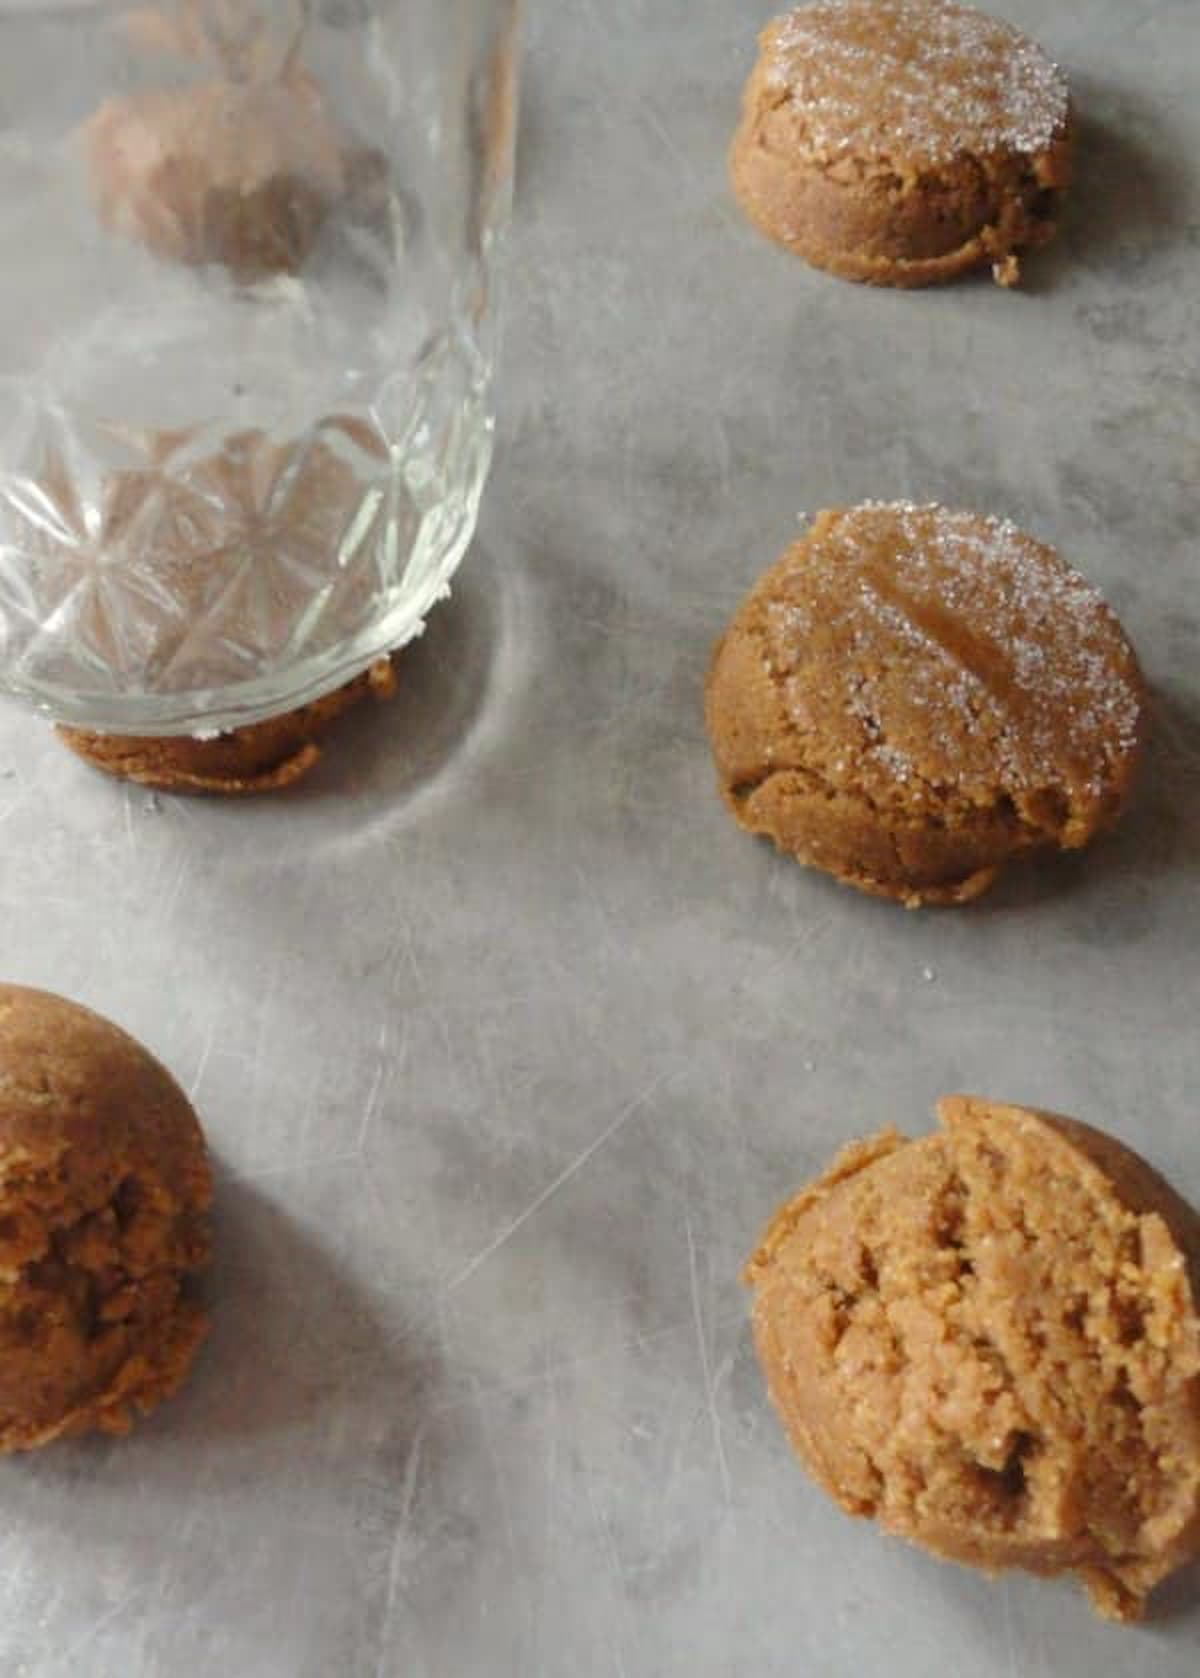 A glasses pressing Molasses Cookie Dough balls into cookie discs.